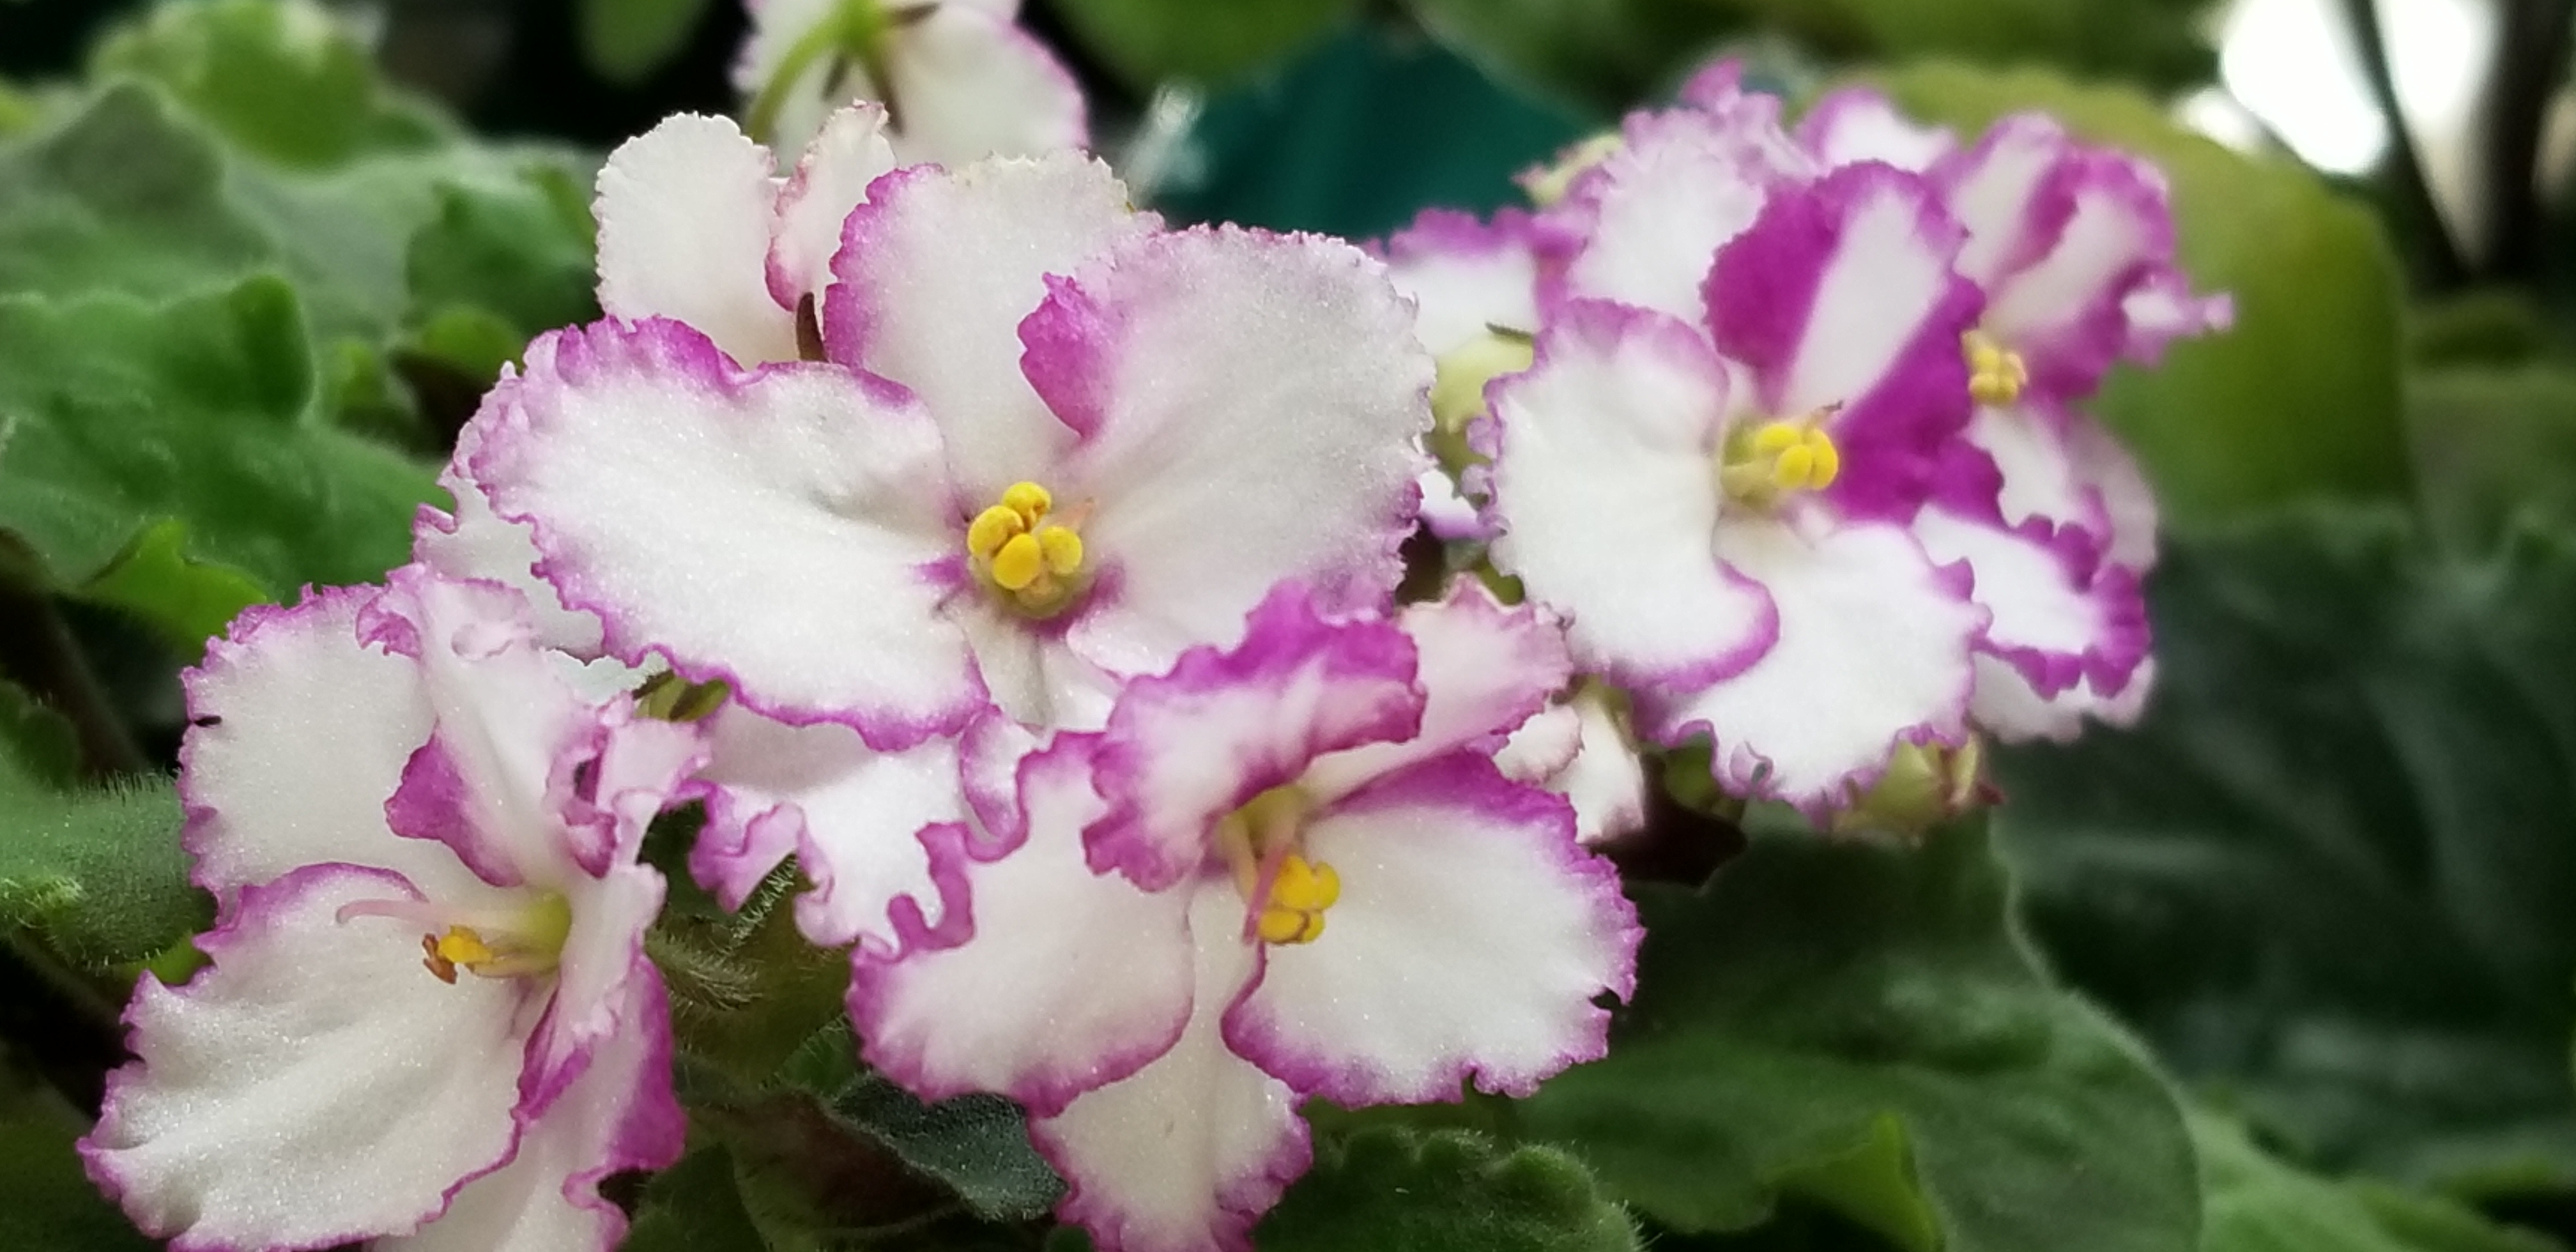 """White field with magenta edge, bloom 1.25"""" to 1.75"""", clusters of 6-9 blooms on one stem in center top of plant, standard size, leaf growth ruffled, slightly raised"""